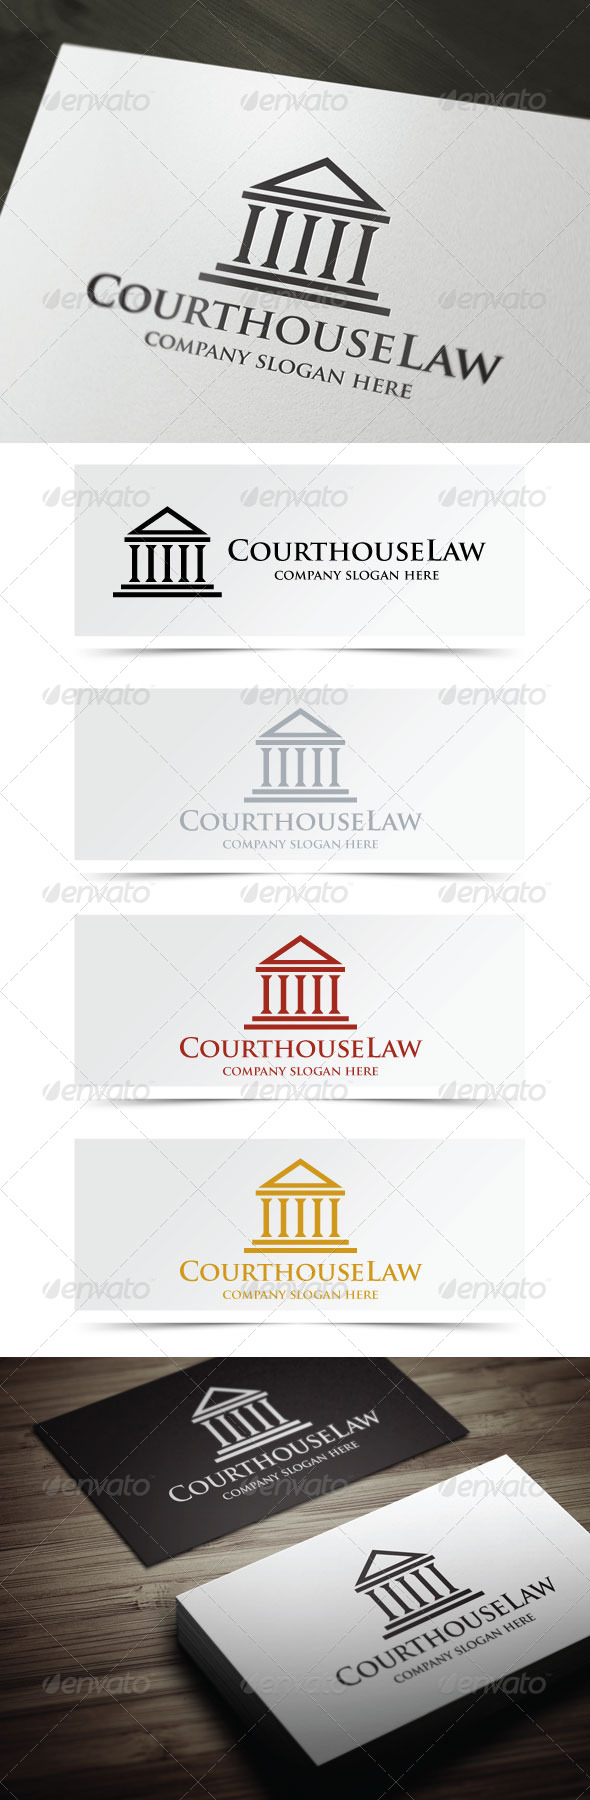 GraphicRiver Courthouse Law 5032781